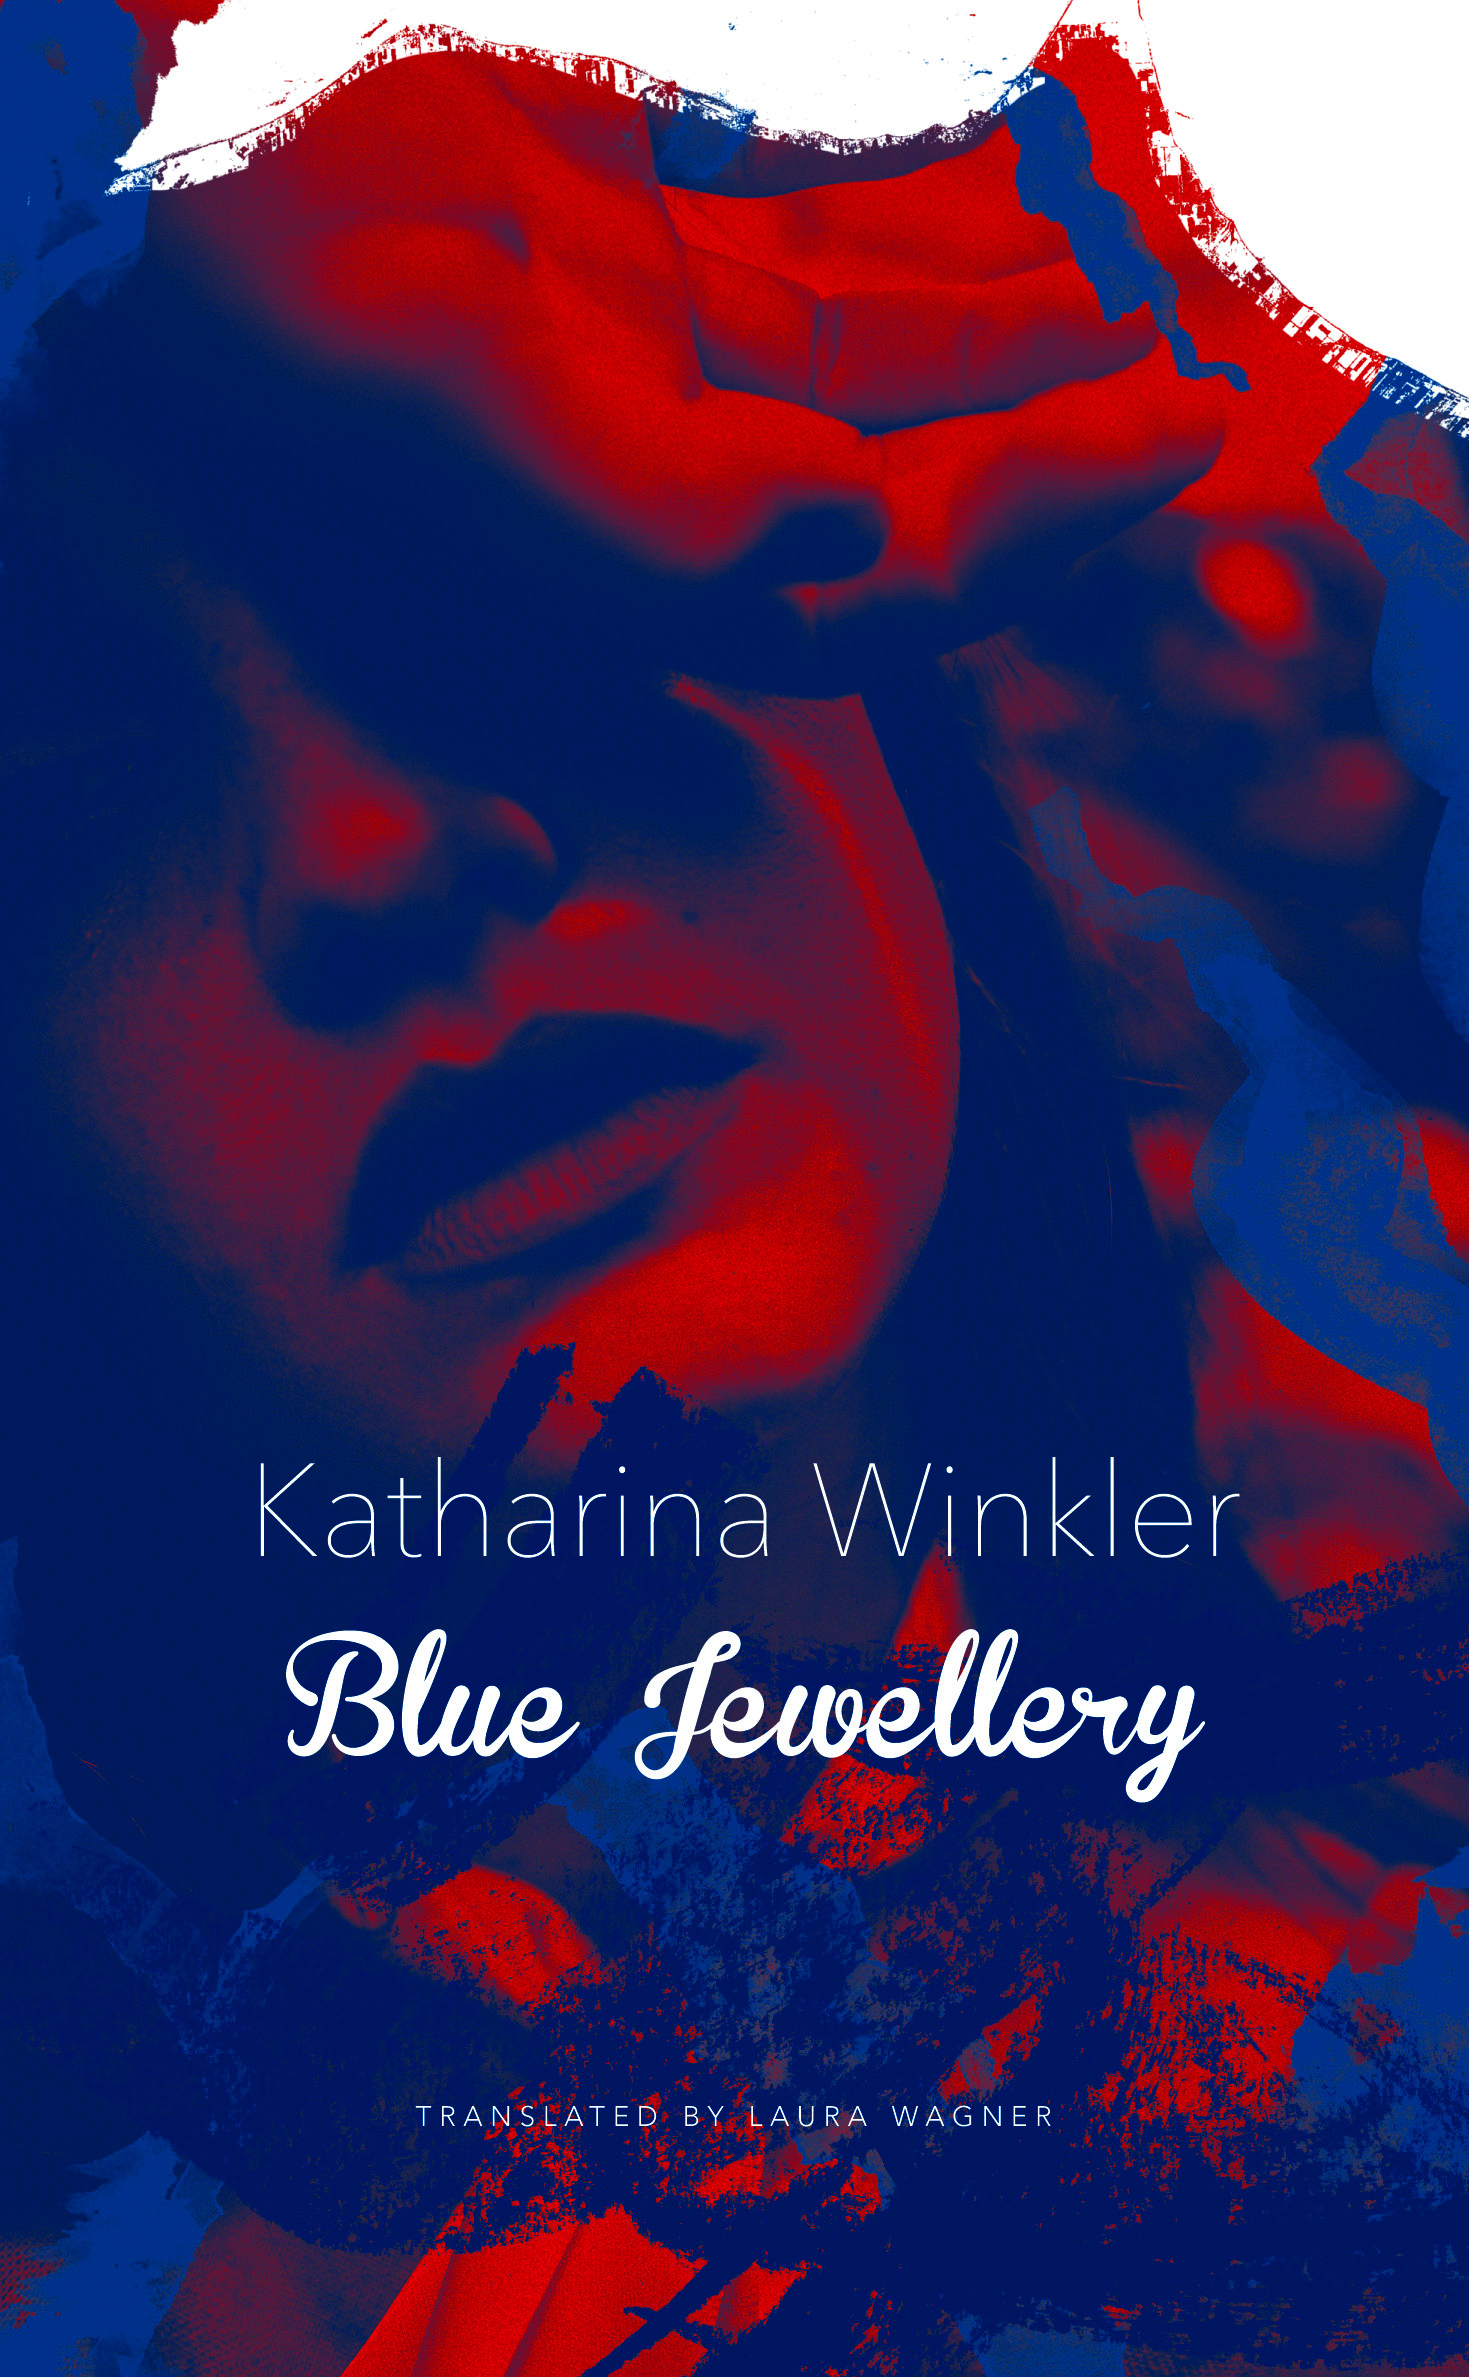 Blue Jewellery by Katharina Winkler | Seagull Books